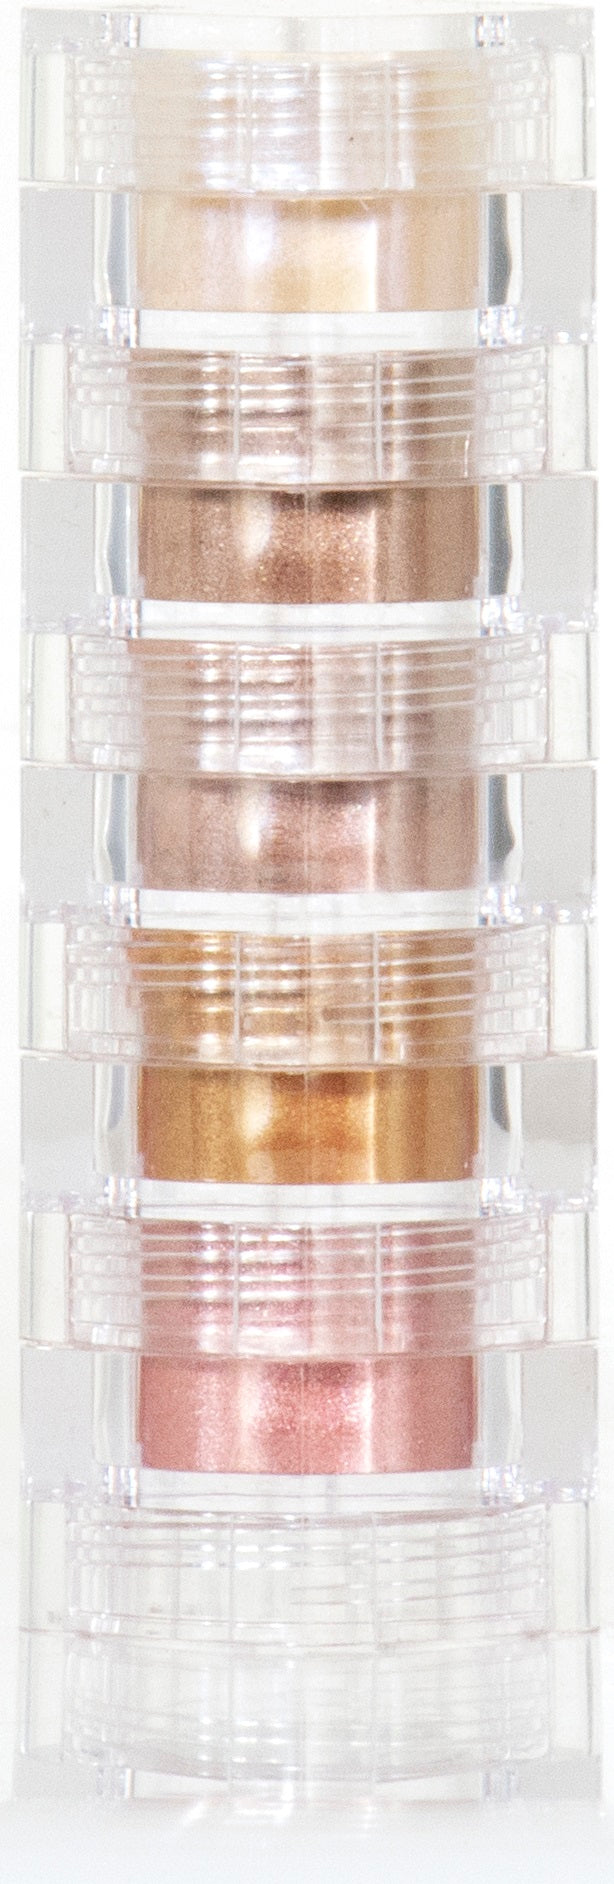 True Colors Mineral Makeup Neutral 5 Stack